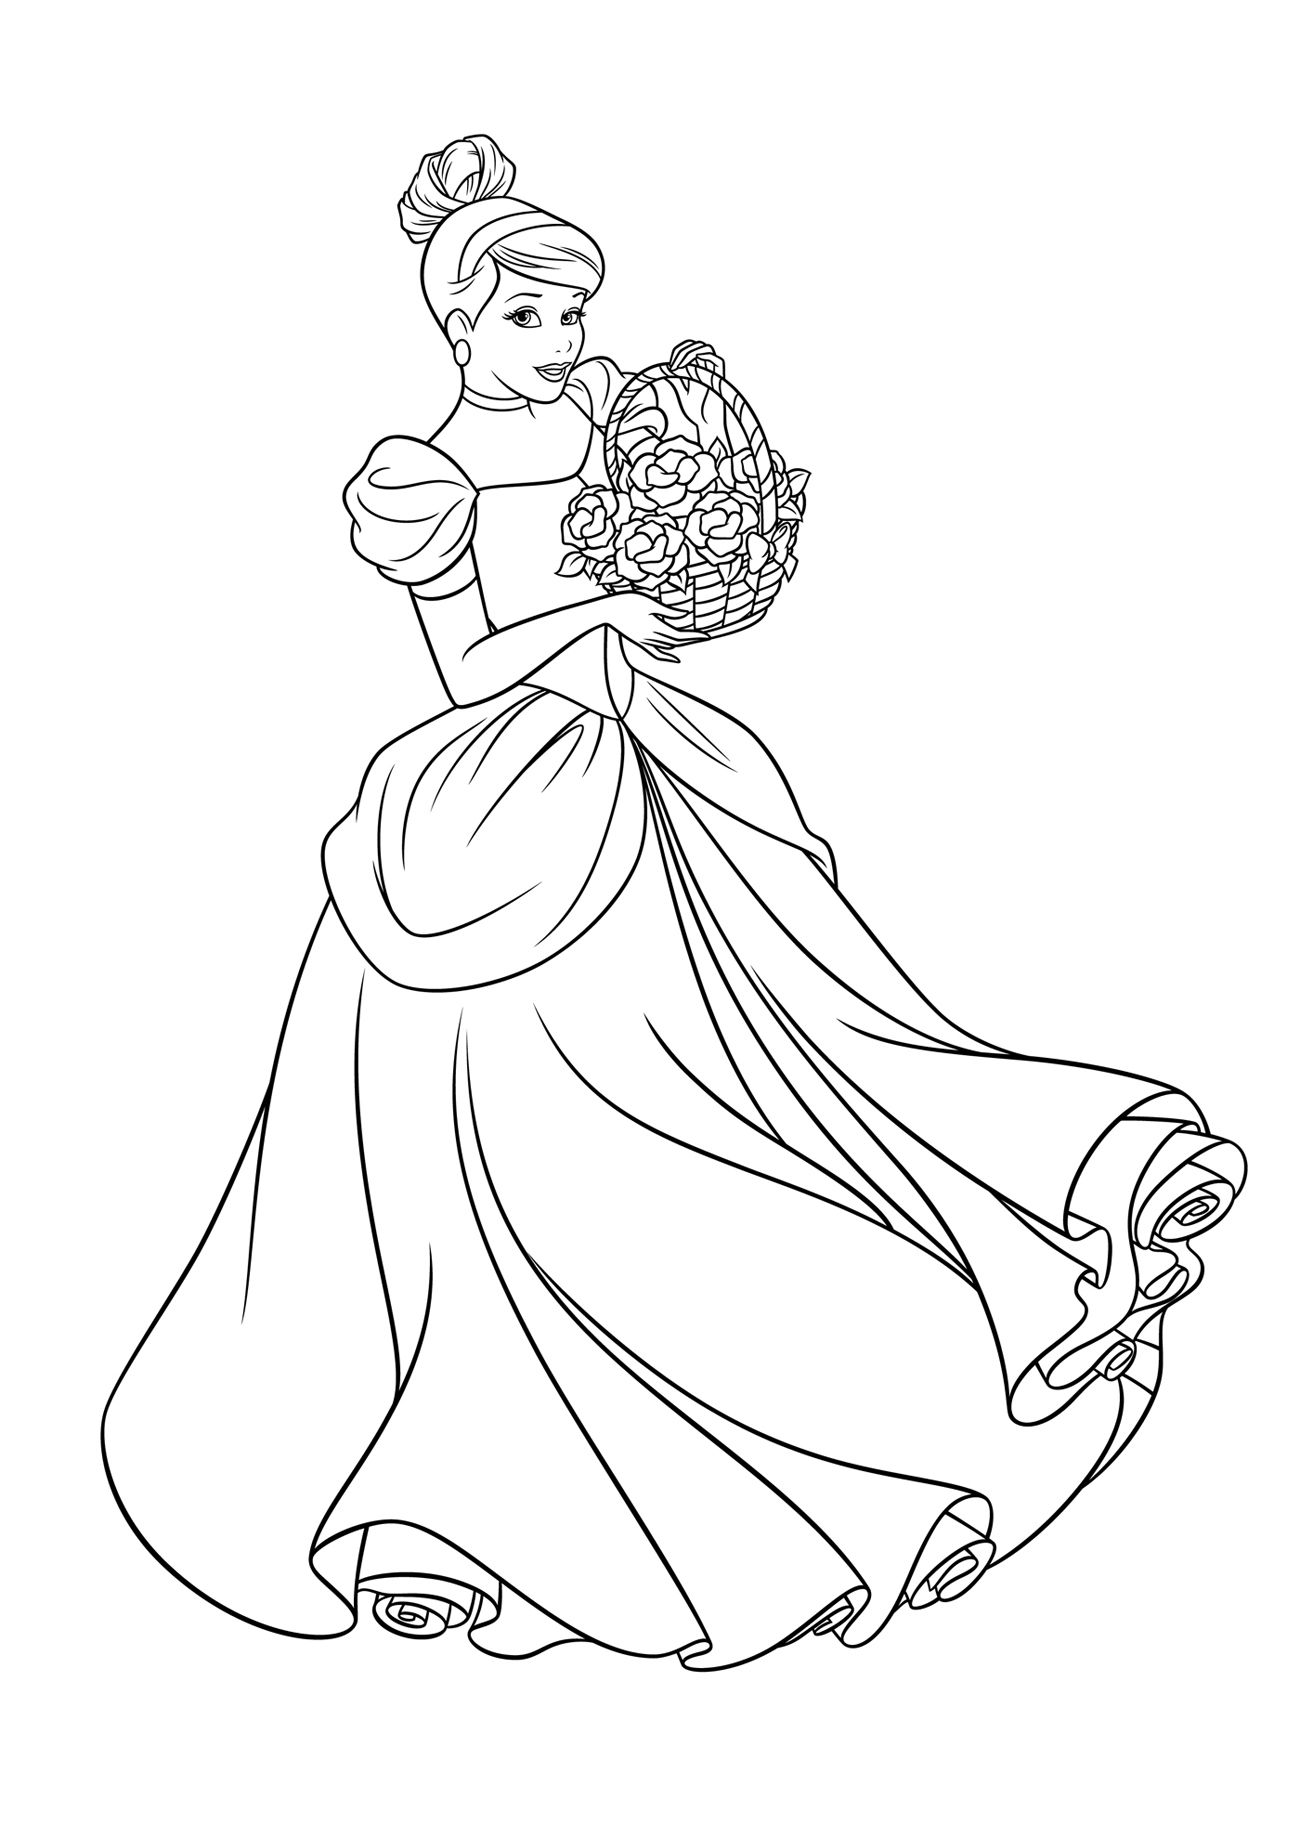 Pin by NAL NAL on Cinderella | Pinterest | Disney colors, Coloring ...